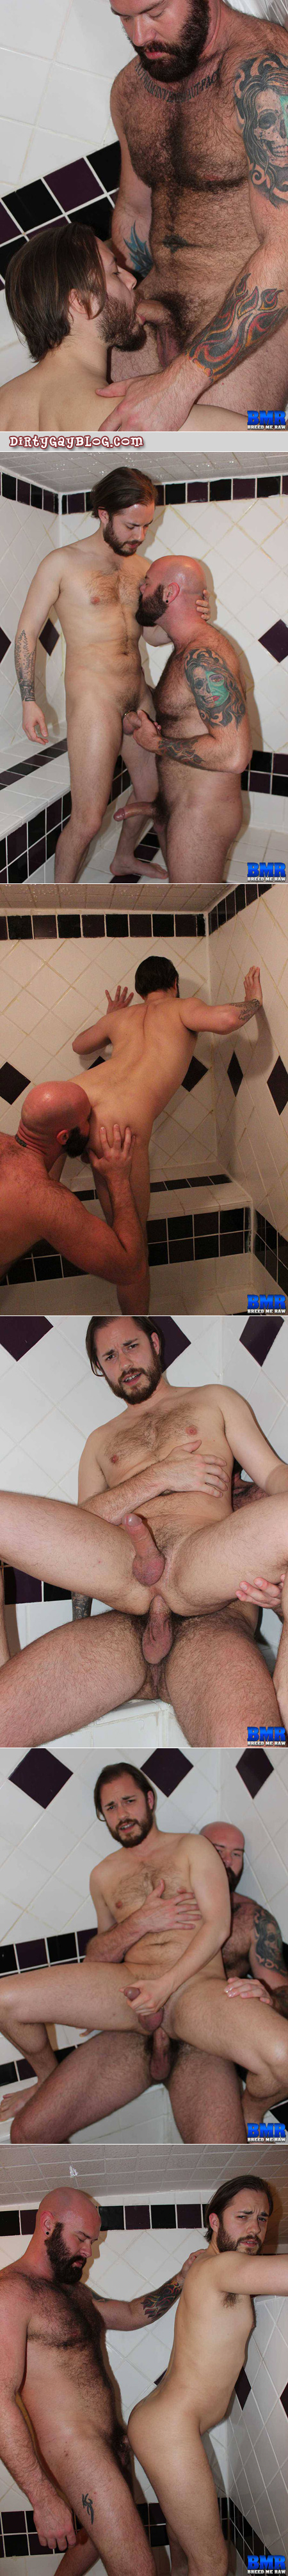 Hairy bear and cub fucking bareback in the steam room at the gym.